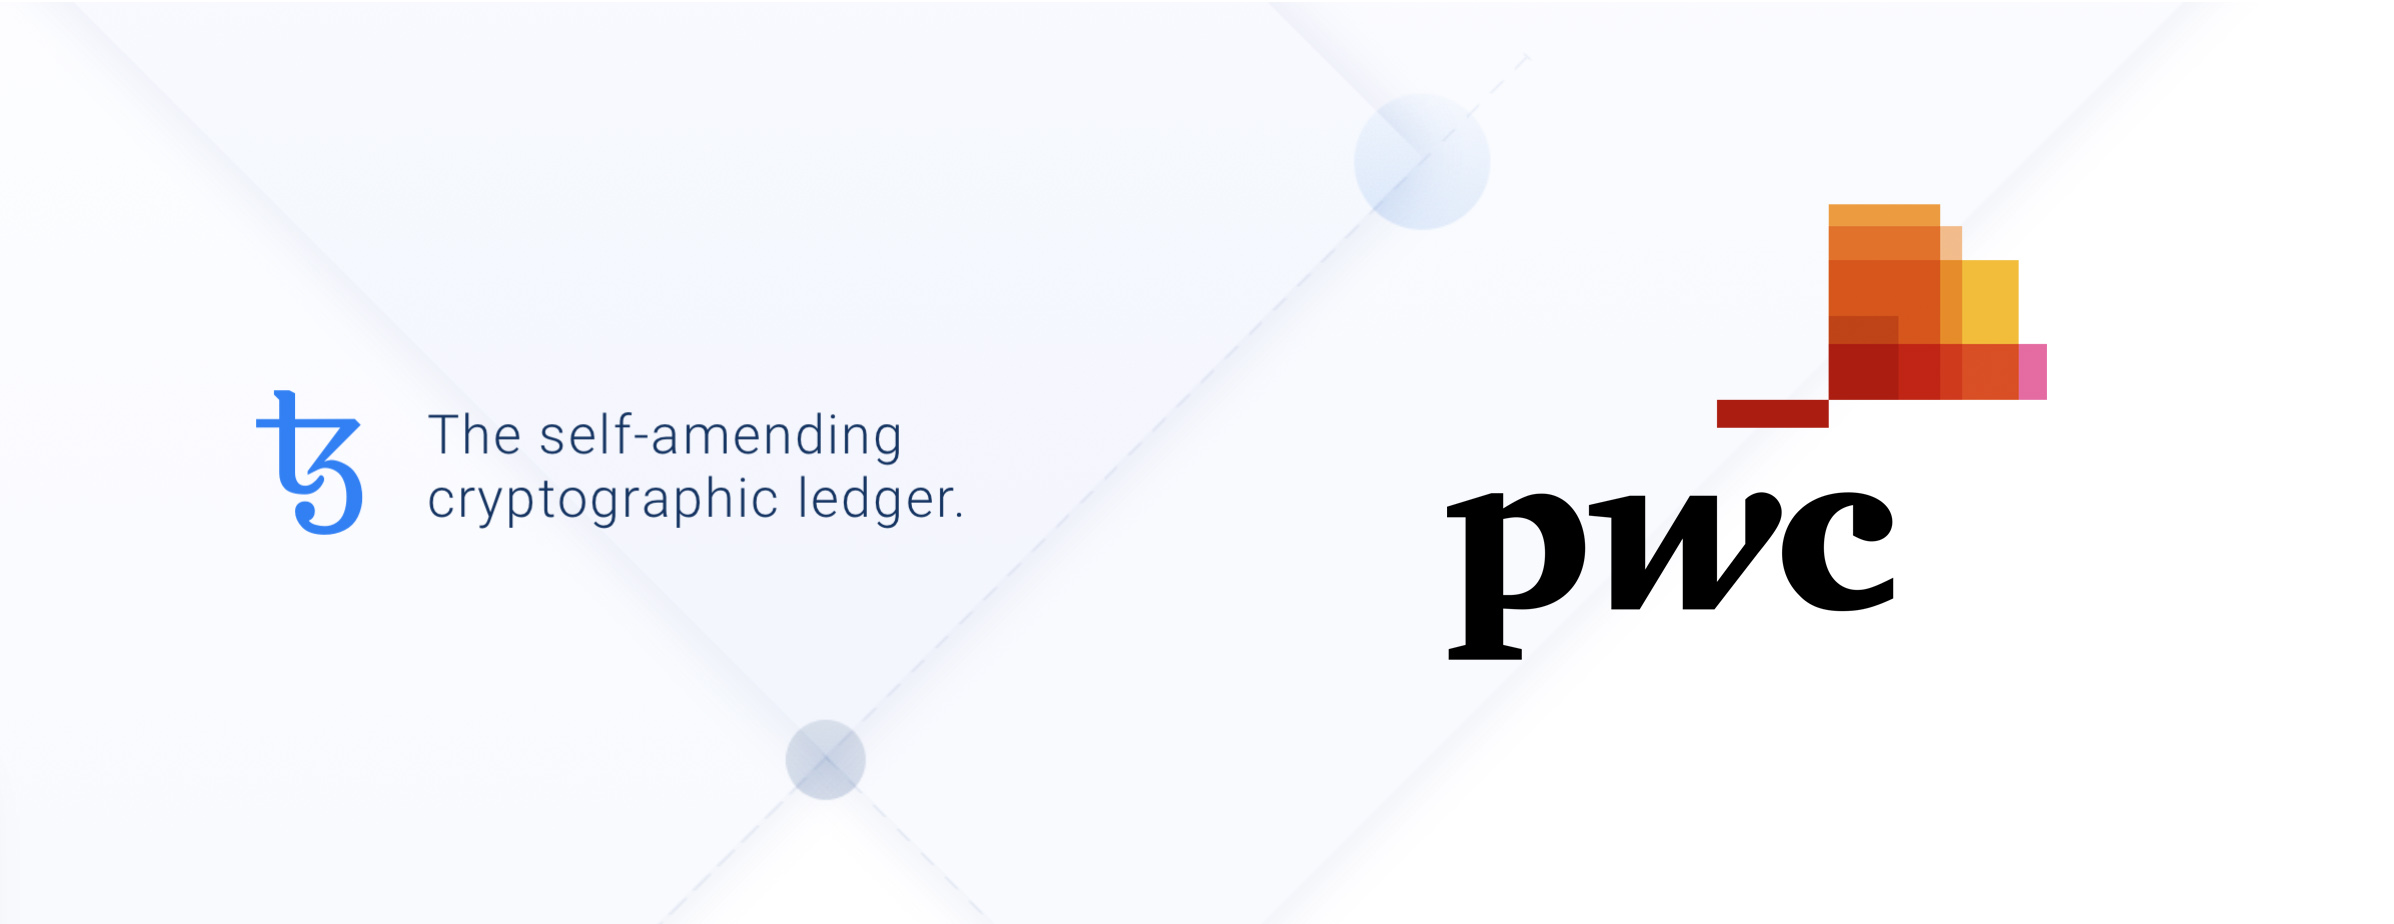 """Tezos Appoints """"Big Four"""" Company PwC for External Audit"""